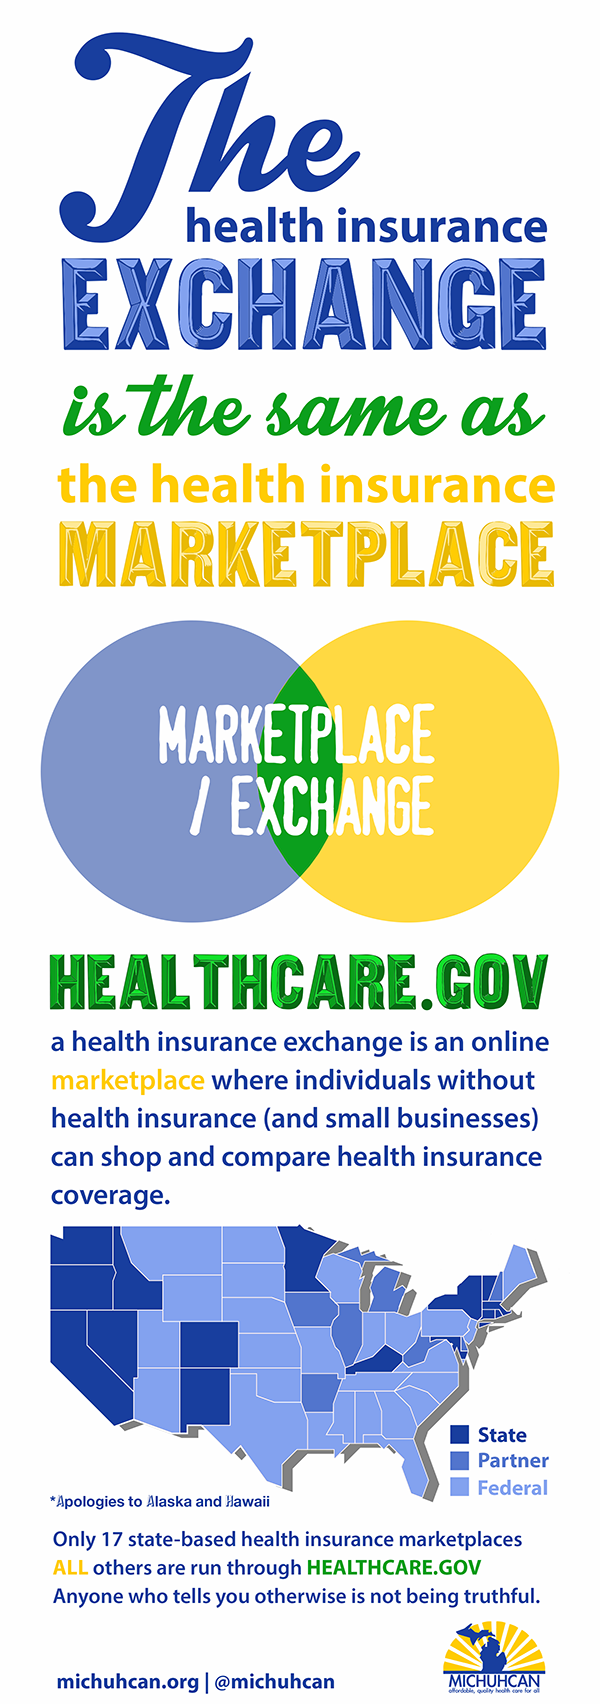 What's the Difference Between the Health Insurance Exchange and the Health Insurance Marketplace?